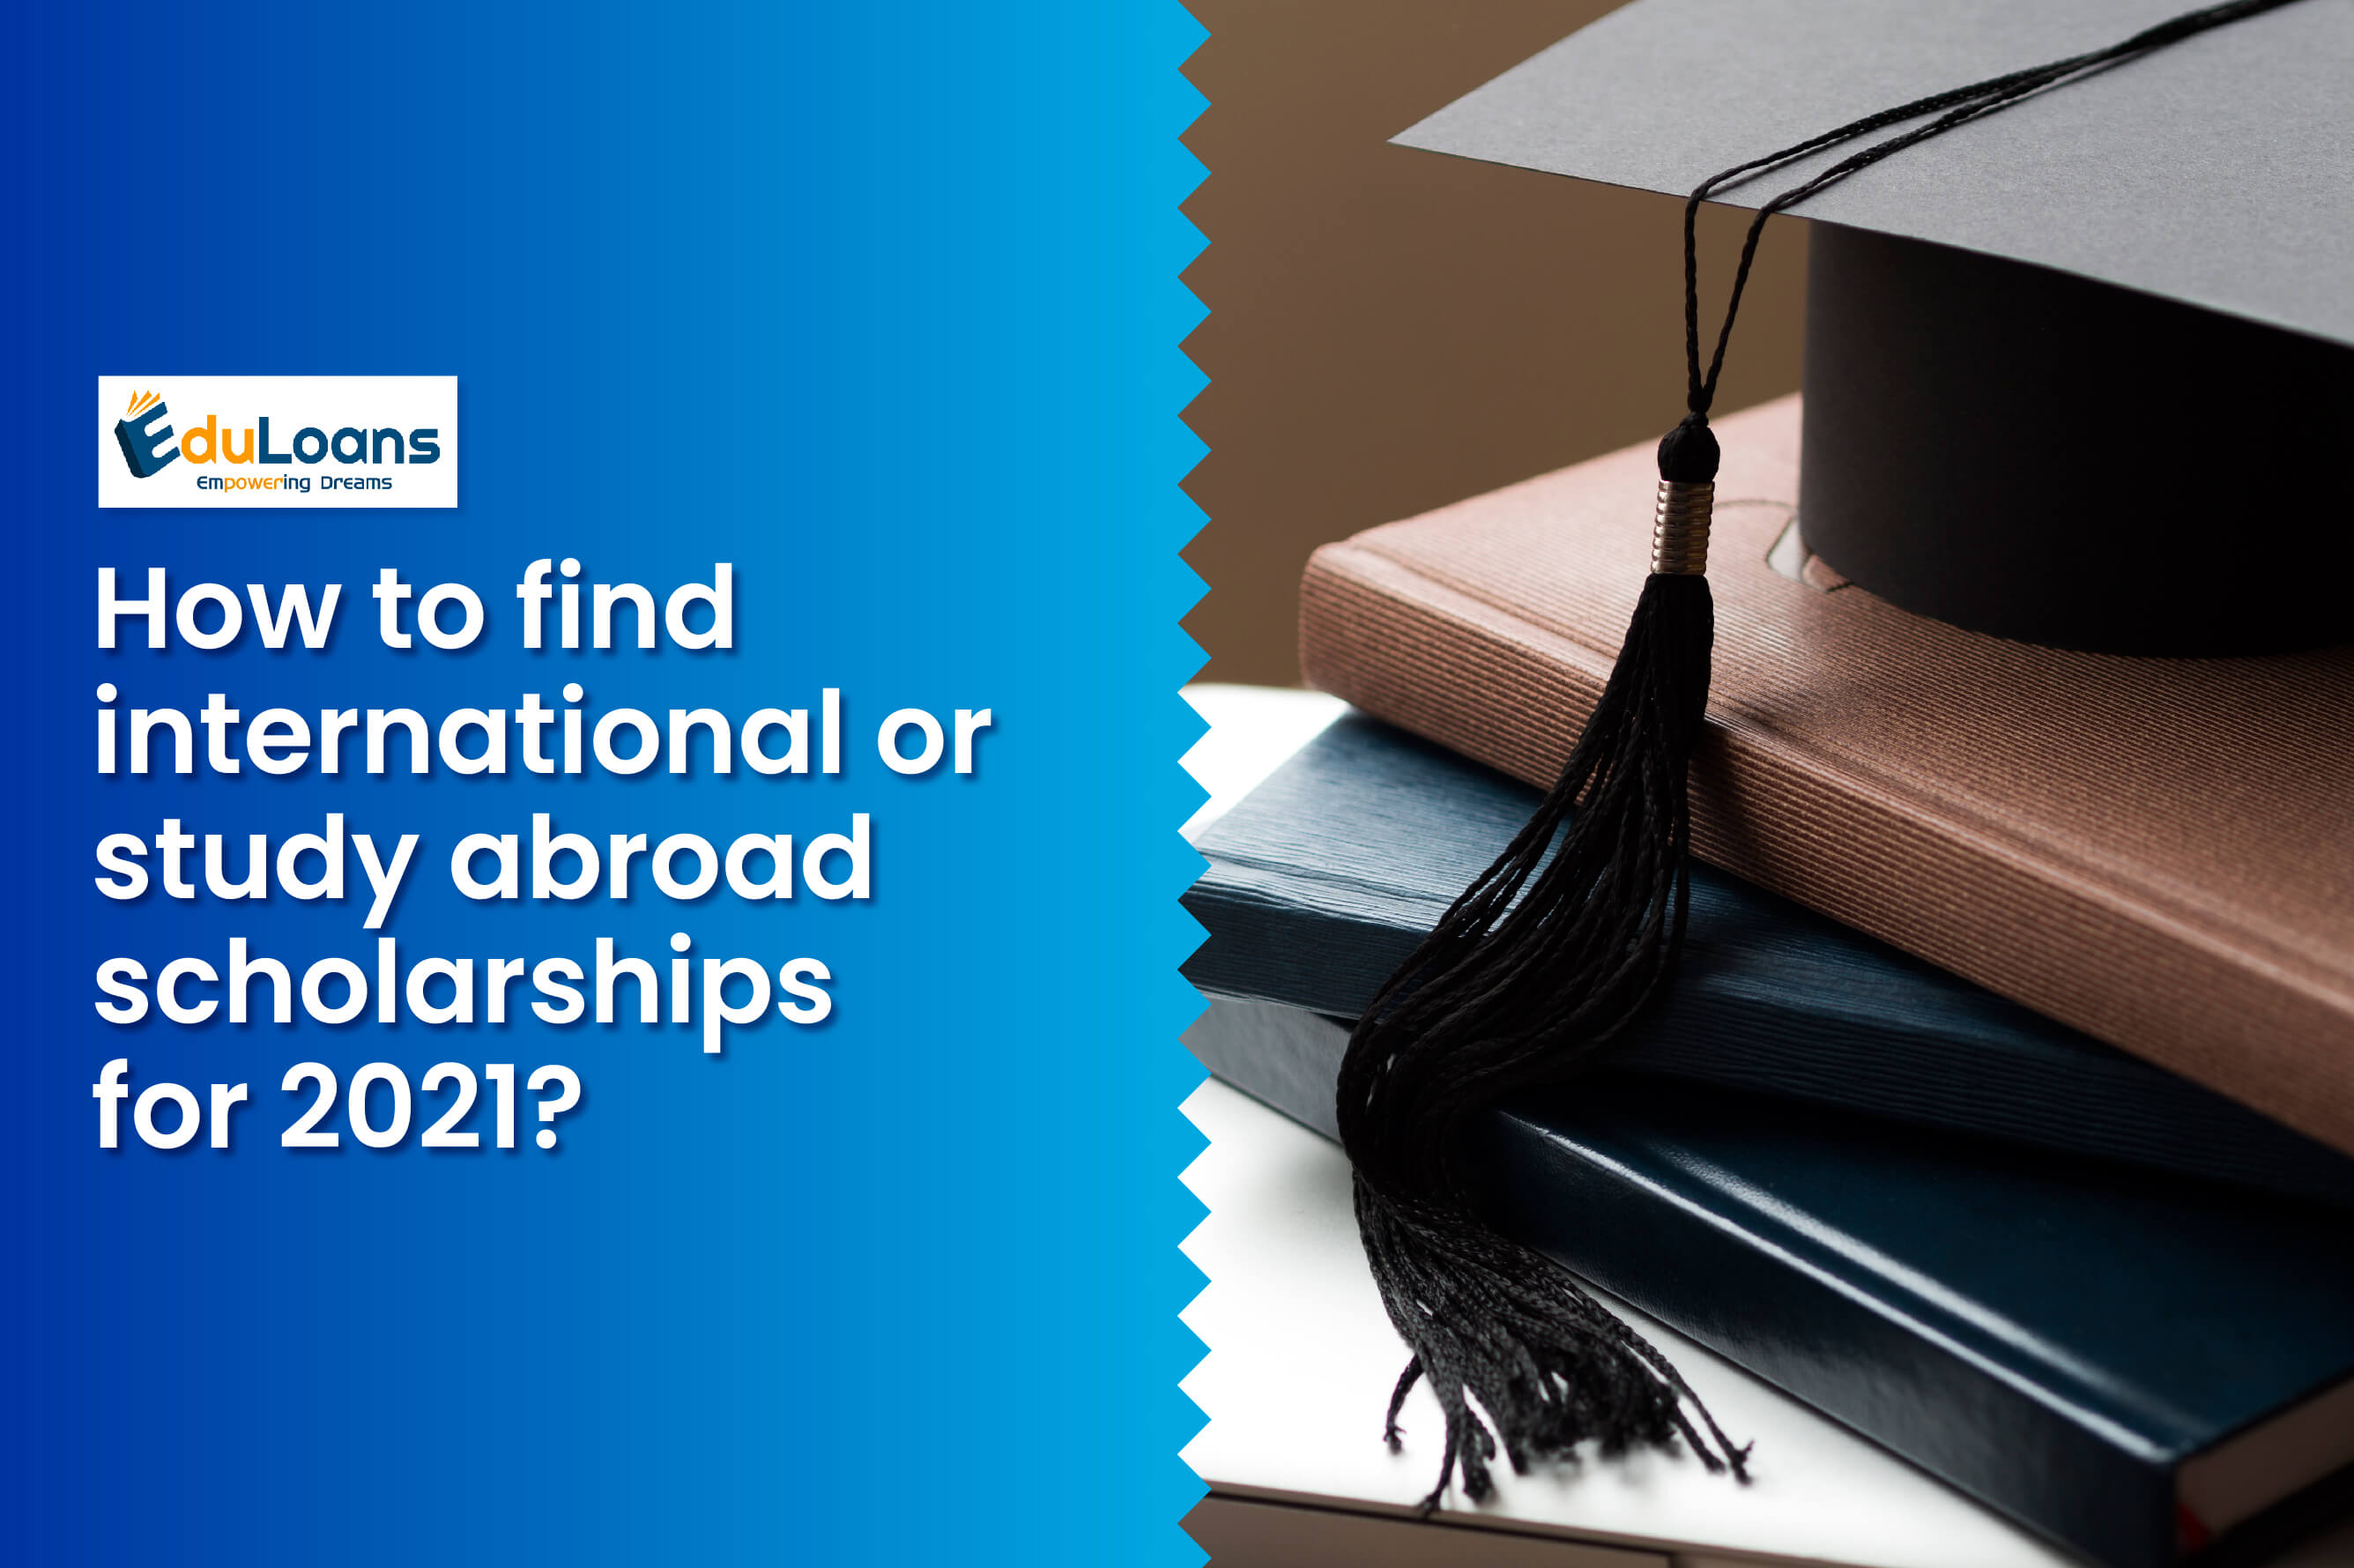 How to find international or study abroad scholarships for 2021?